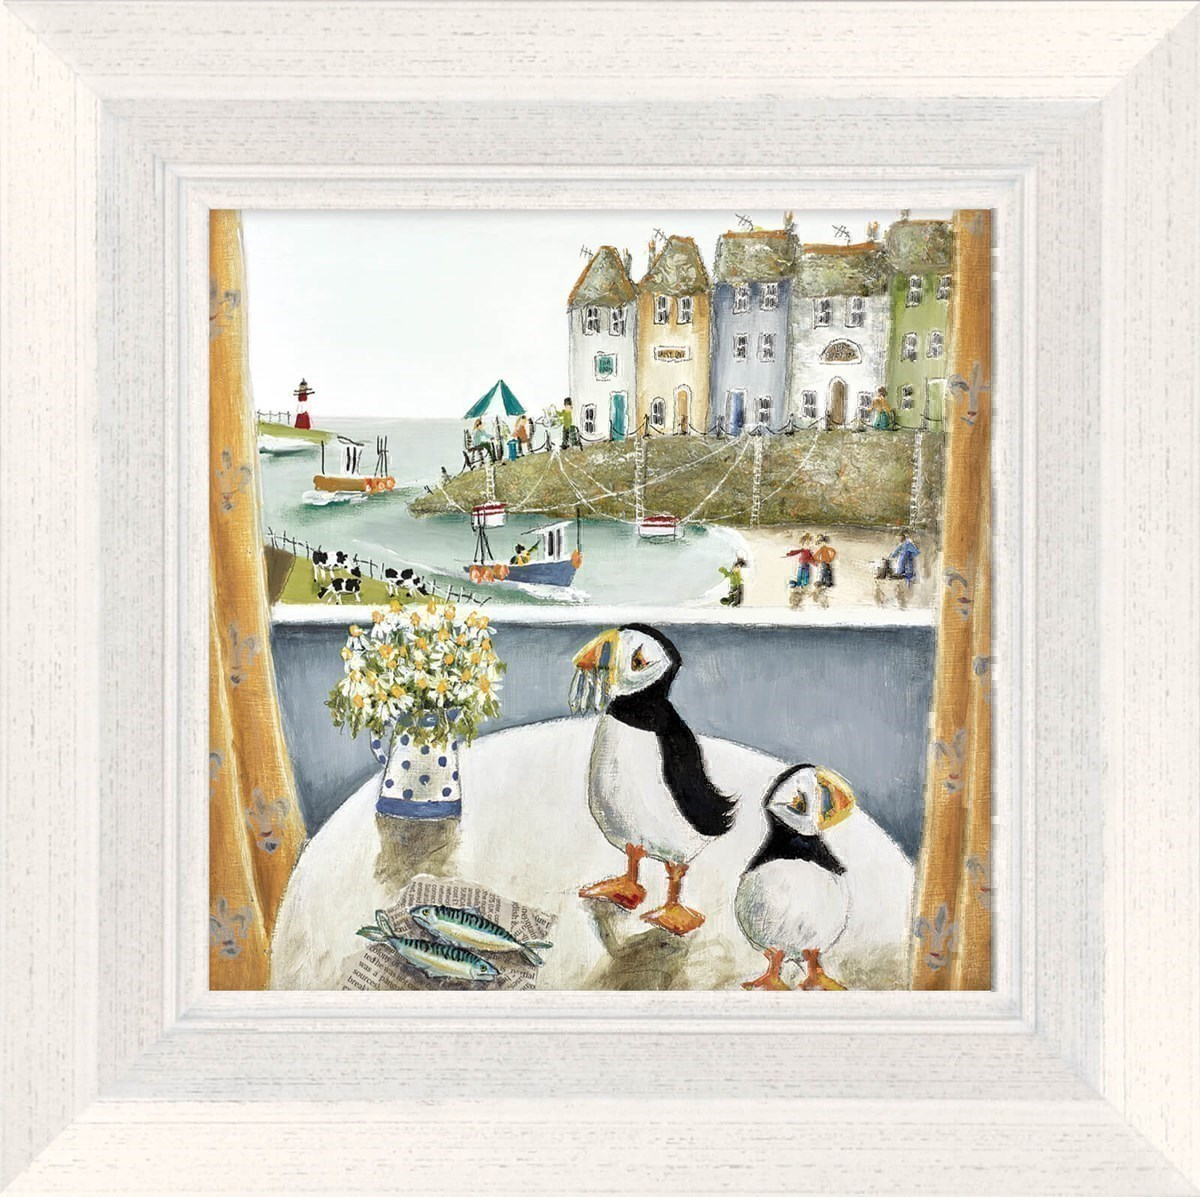 Breakfast Table by Rebecca Lardner - Framed Limited Edition on Canvas